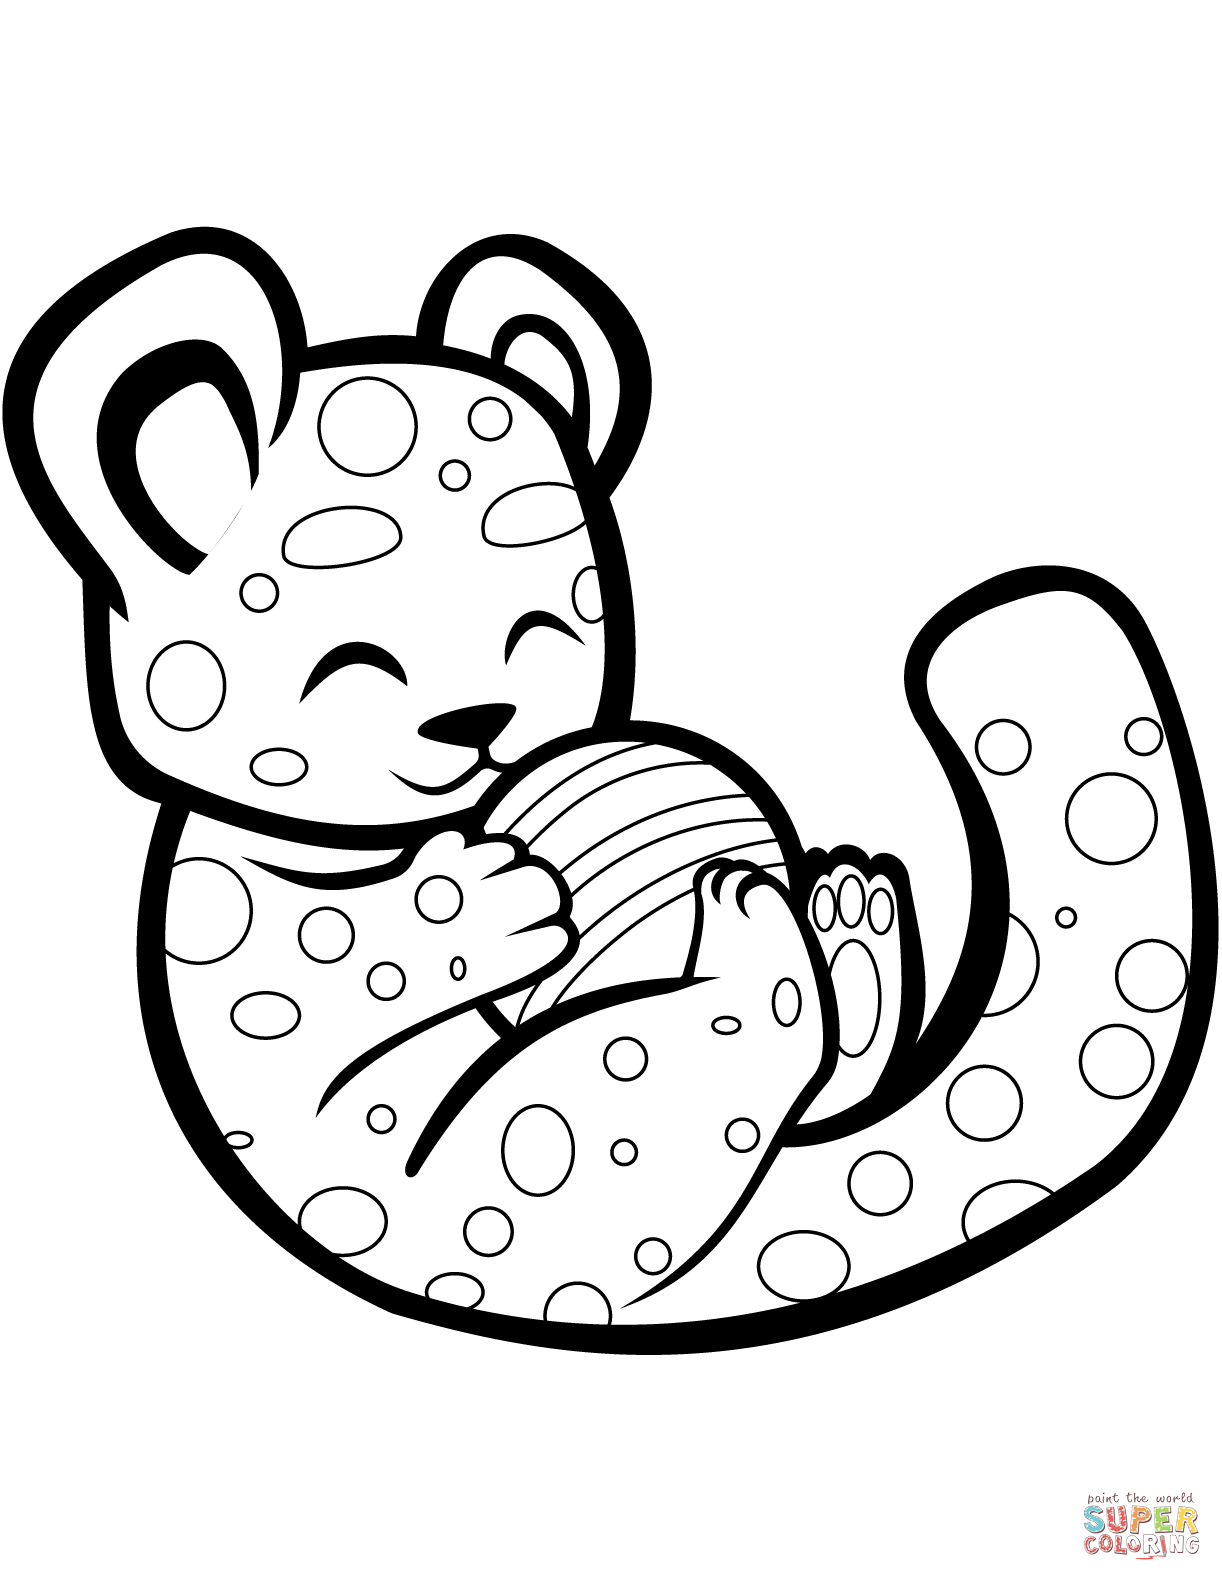 coloring pictures of cheetahs cheetahs gregchapin coloring page free cheetah coloring of coloring pictures cheetahs